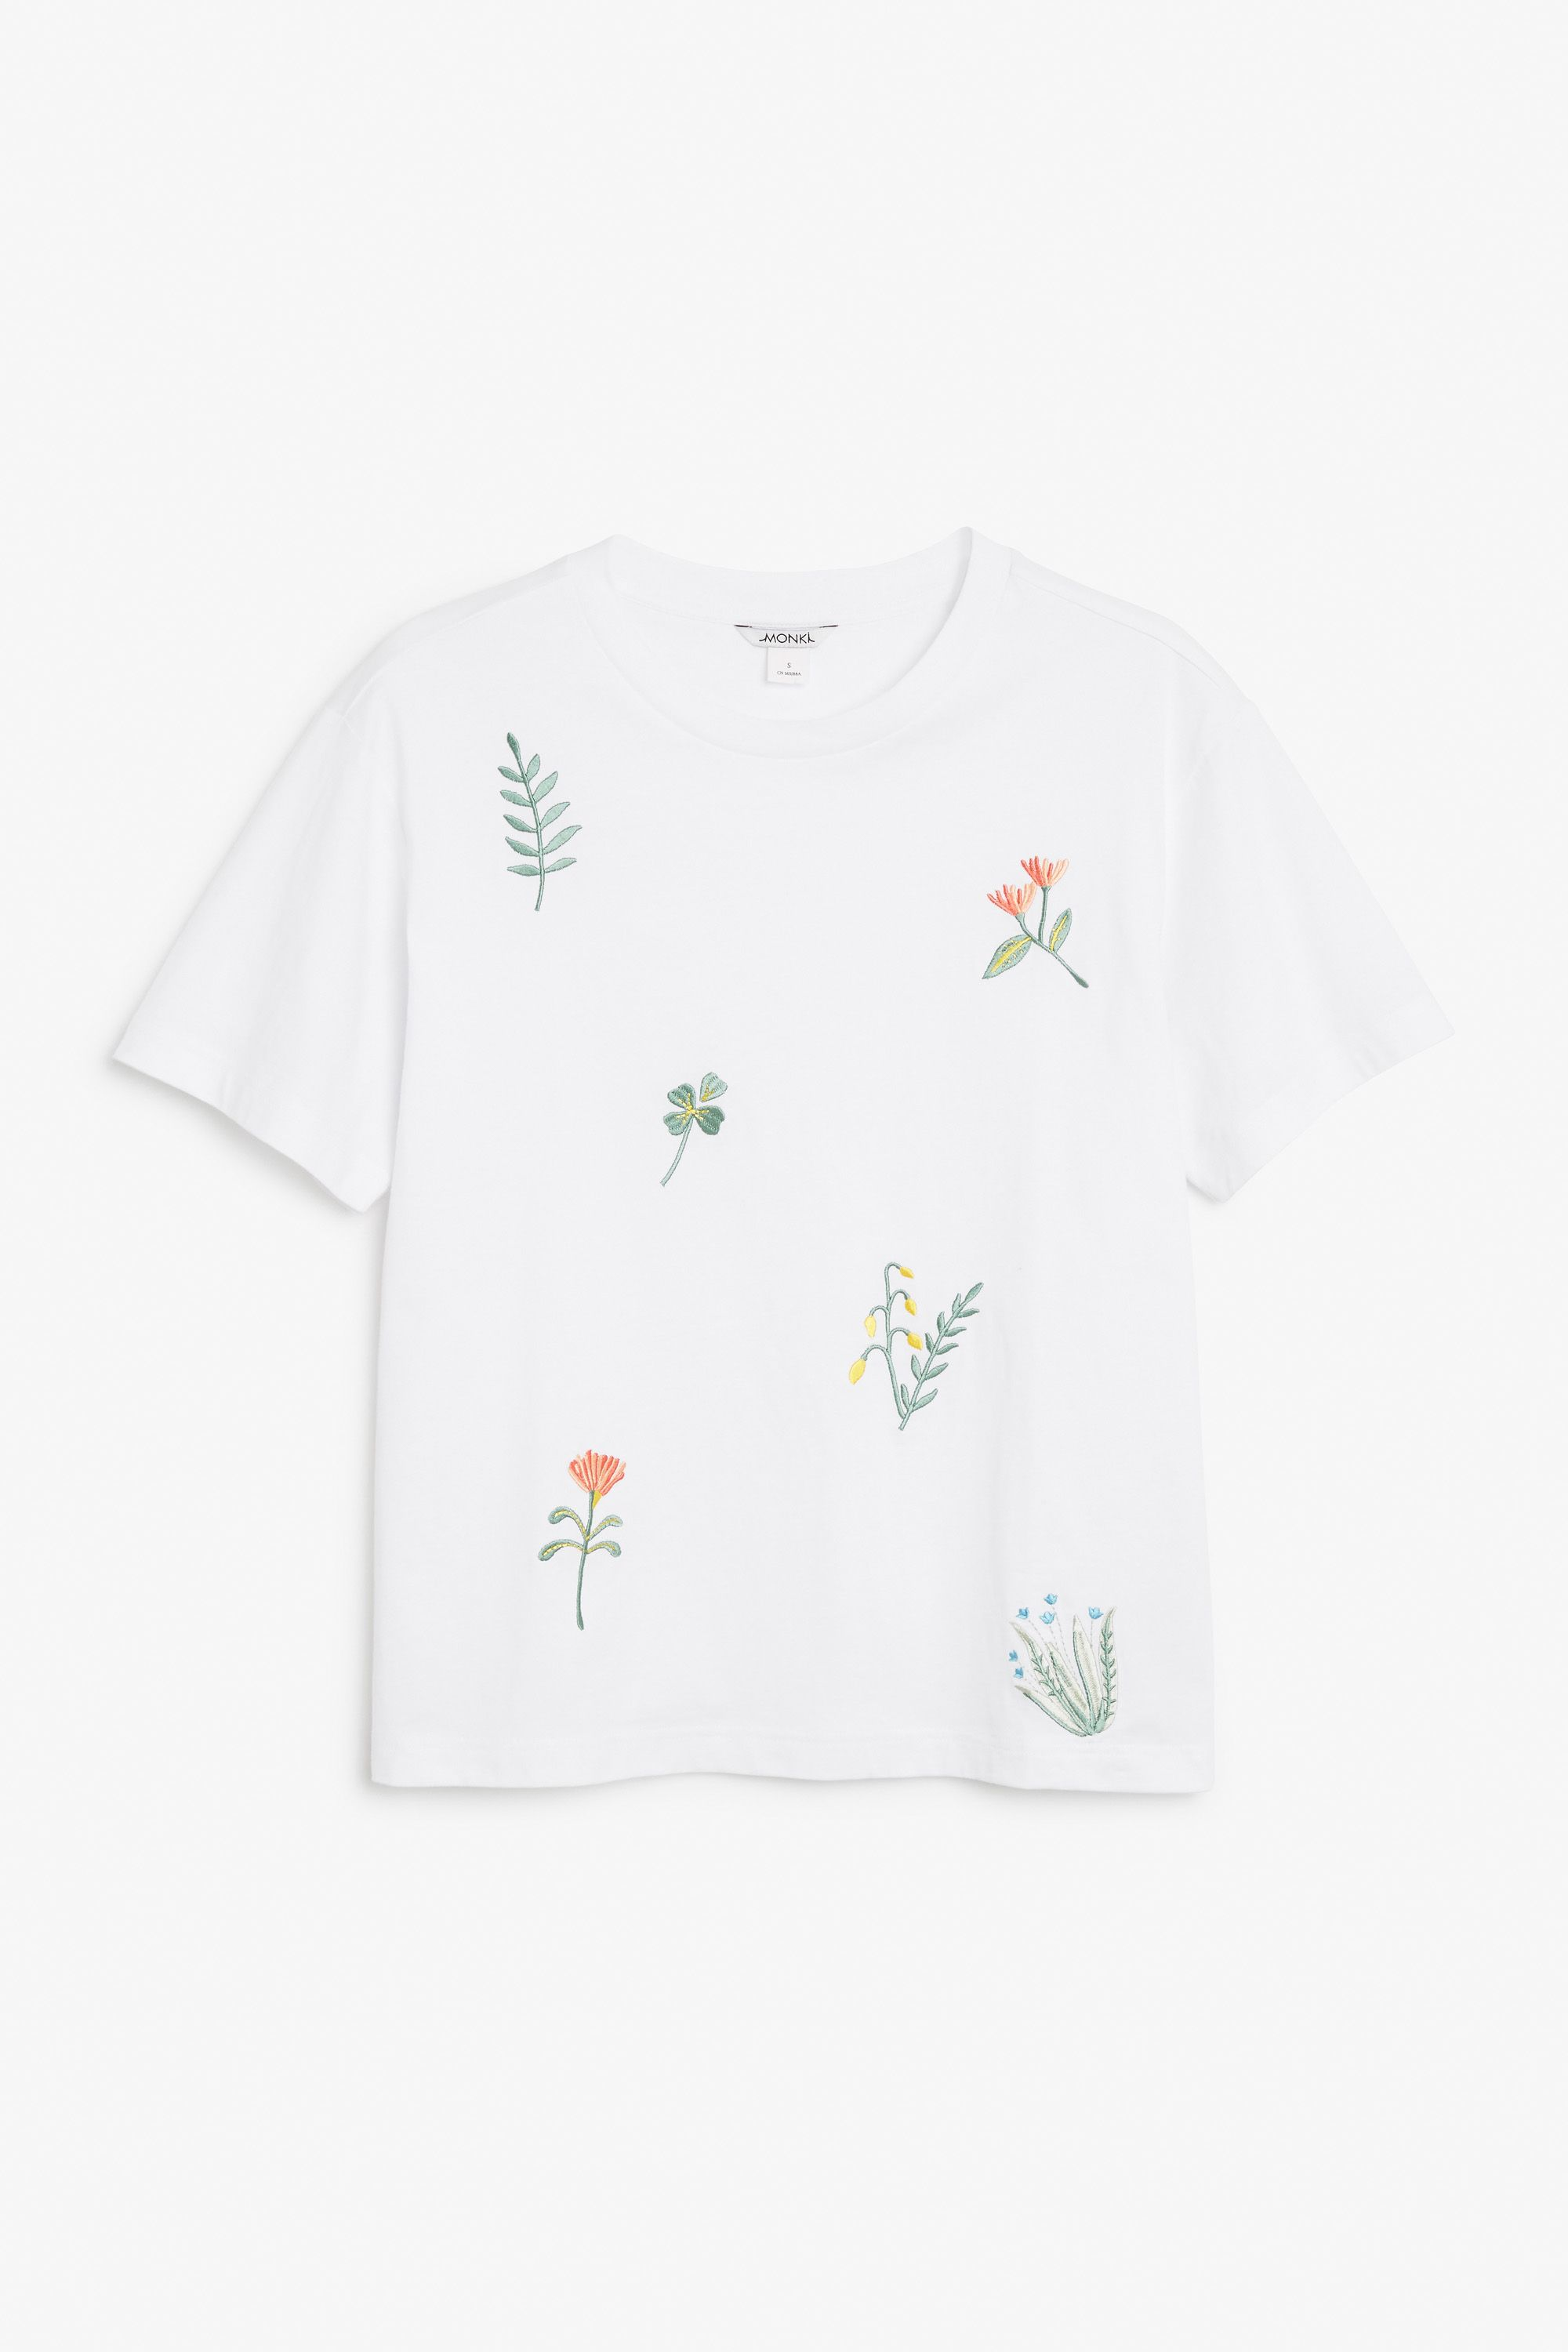 36a02fb1d6 Monki Image 1 of Embroidered tee in White   Crafts   Embroidery ...